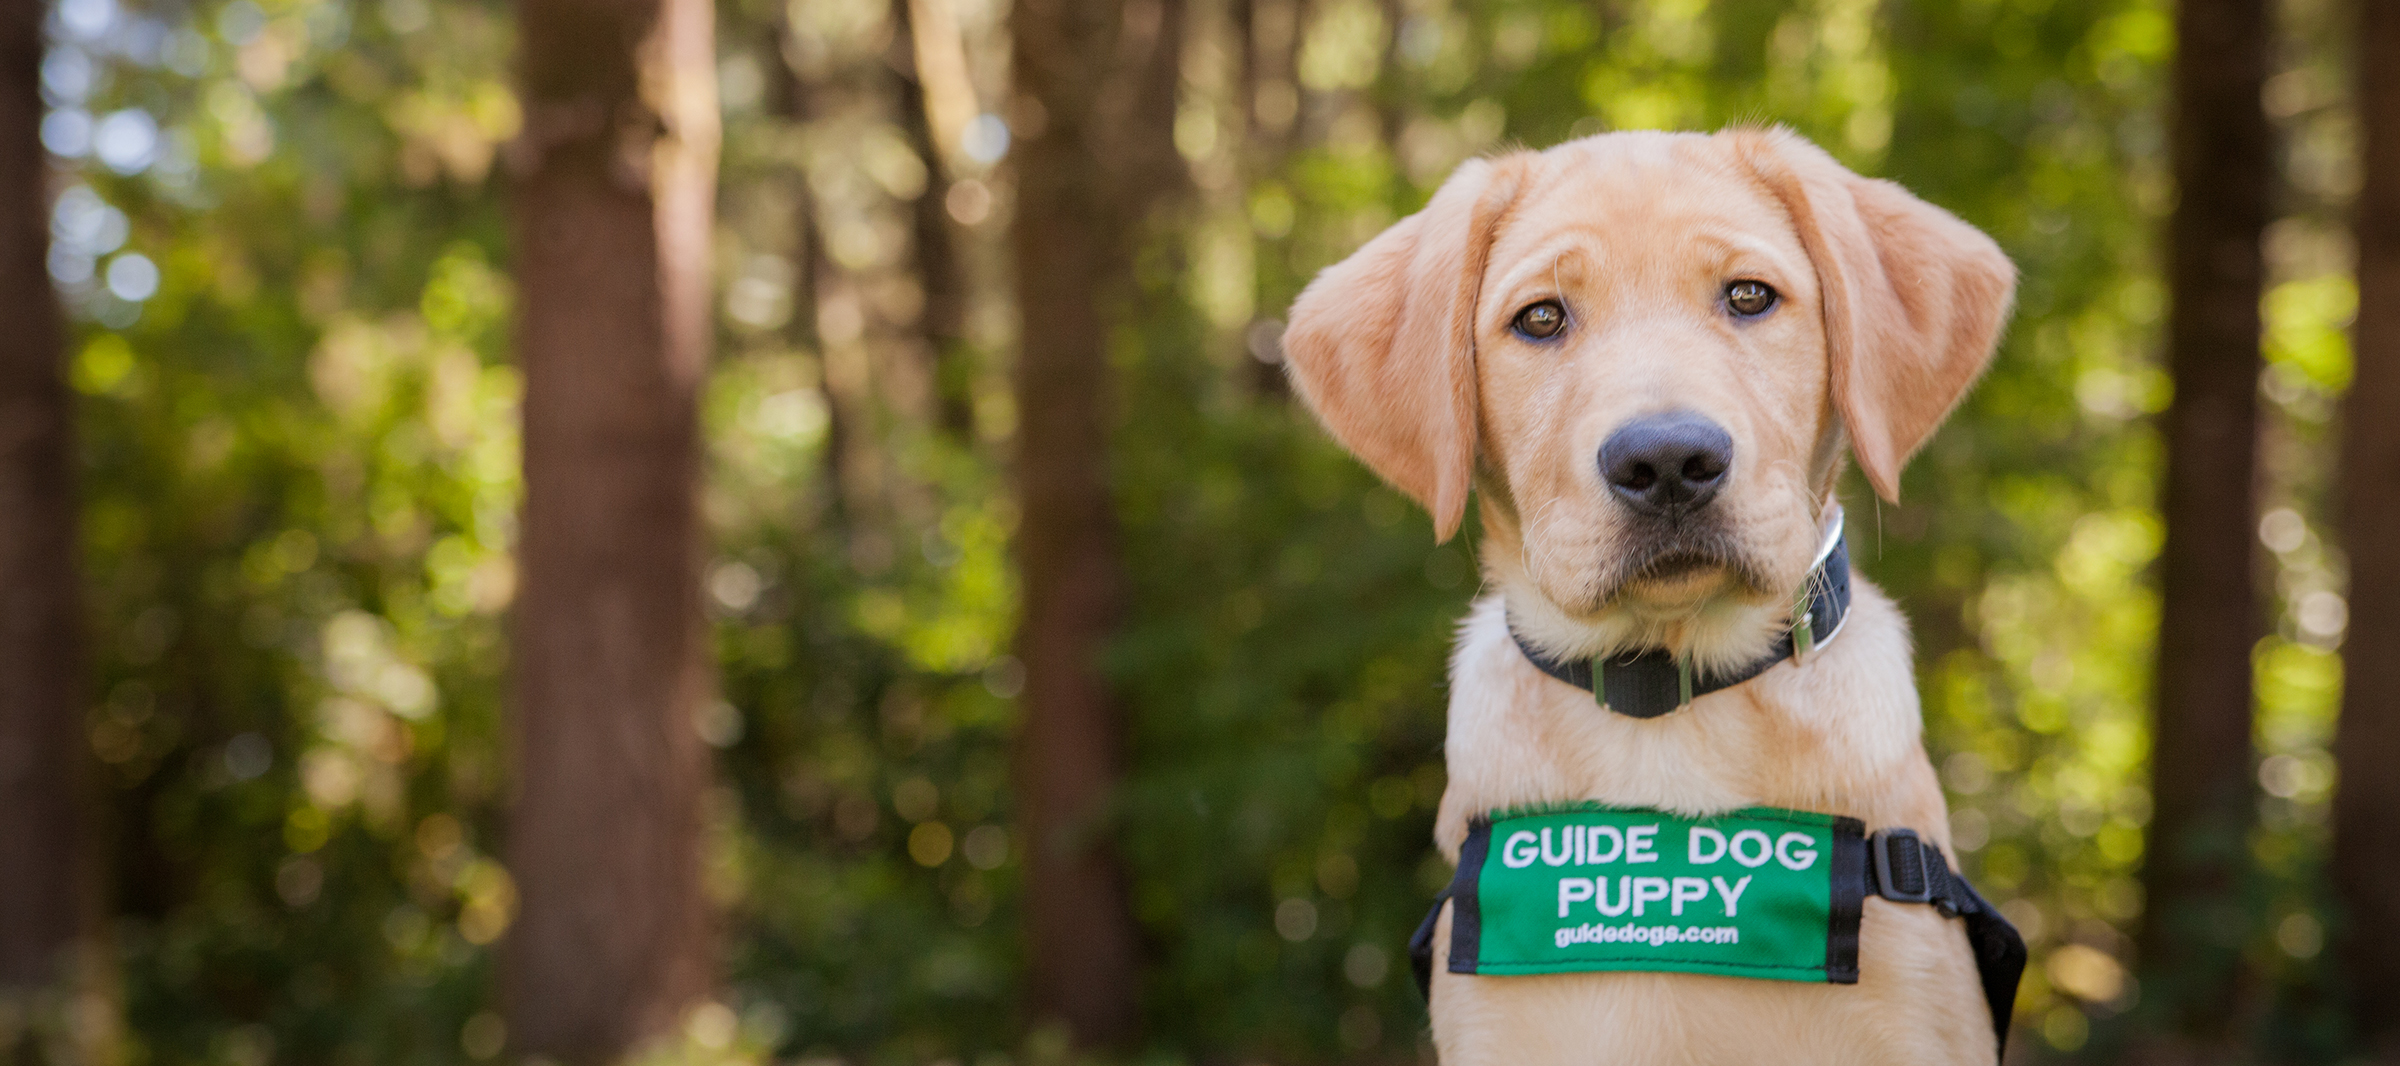 A yellow Lab guide dog puppy against a wooded background.